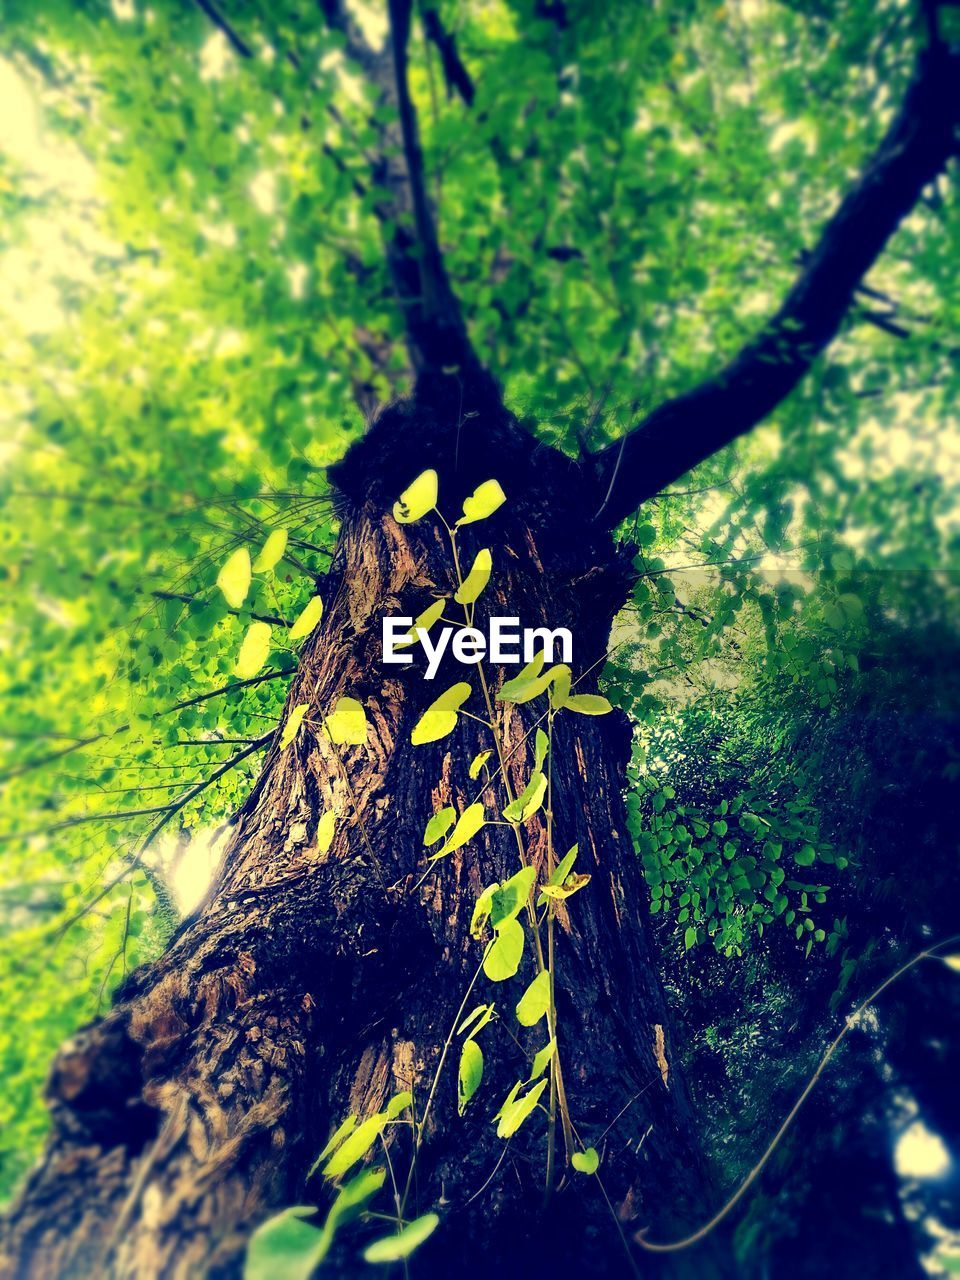 growth, nature, tree, no people, tree trunk, outdoors, green color, close-up, day, plant, beauty in nature, forest, grass, animal themes